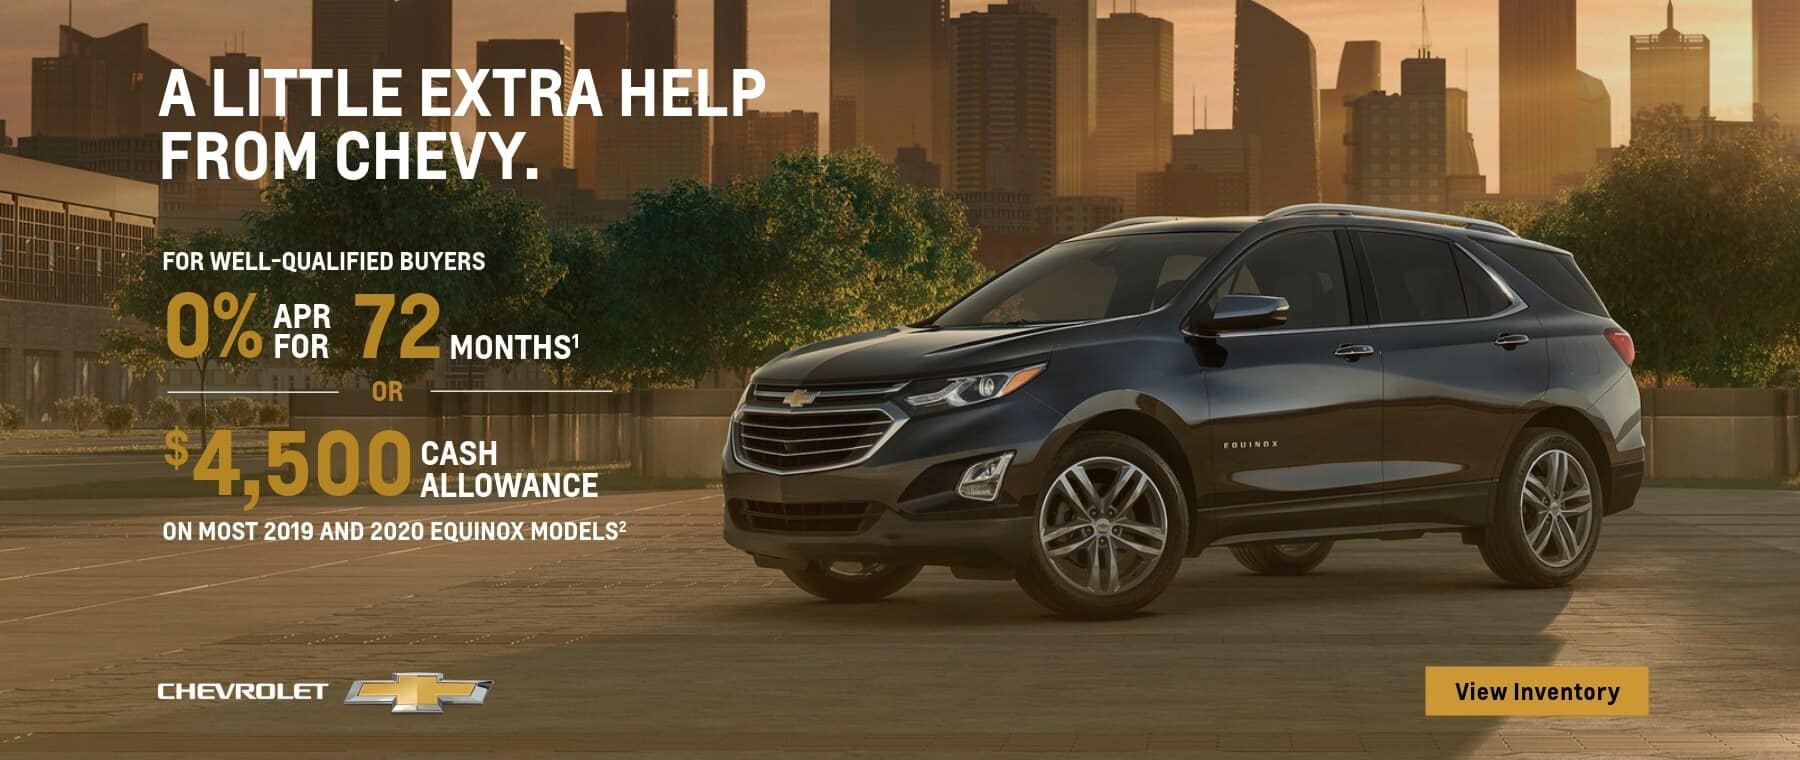 05_2020_JUNE_CHEVY CARES_0 FOR 72 OR $4,500 CASH EQUINOX_1800x760 (1)